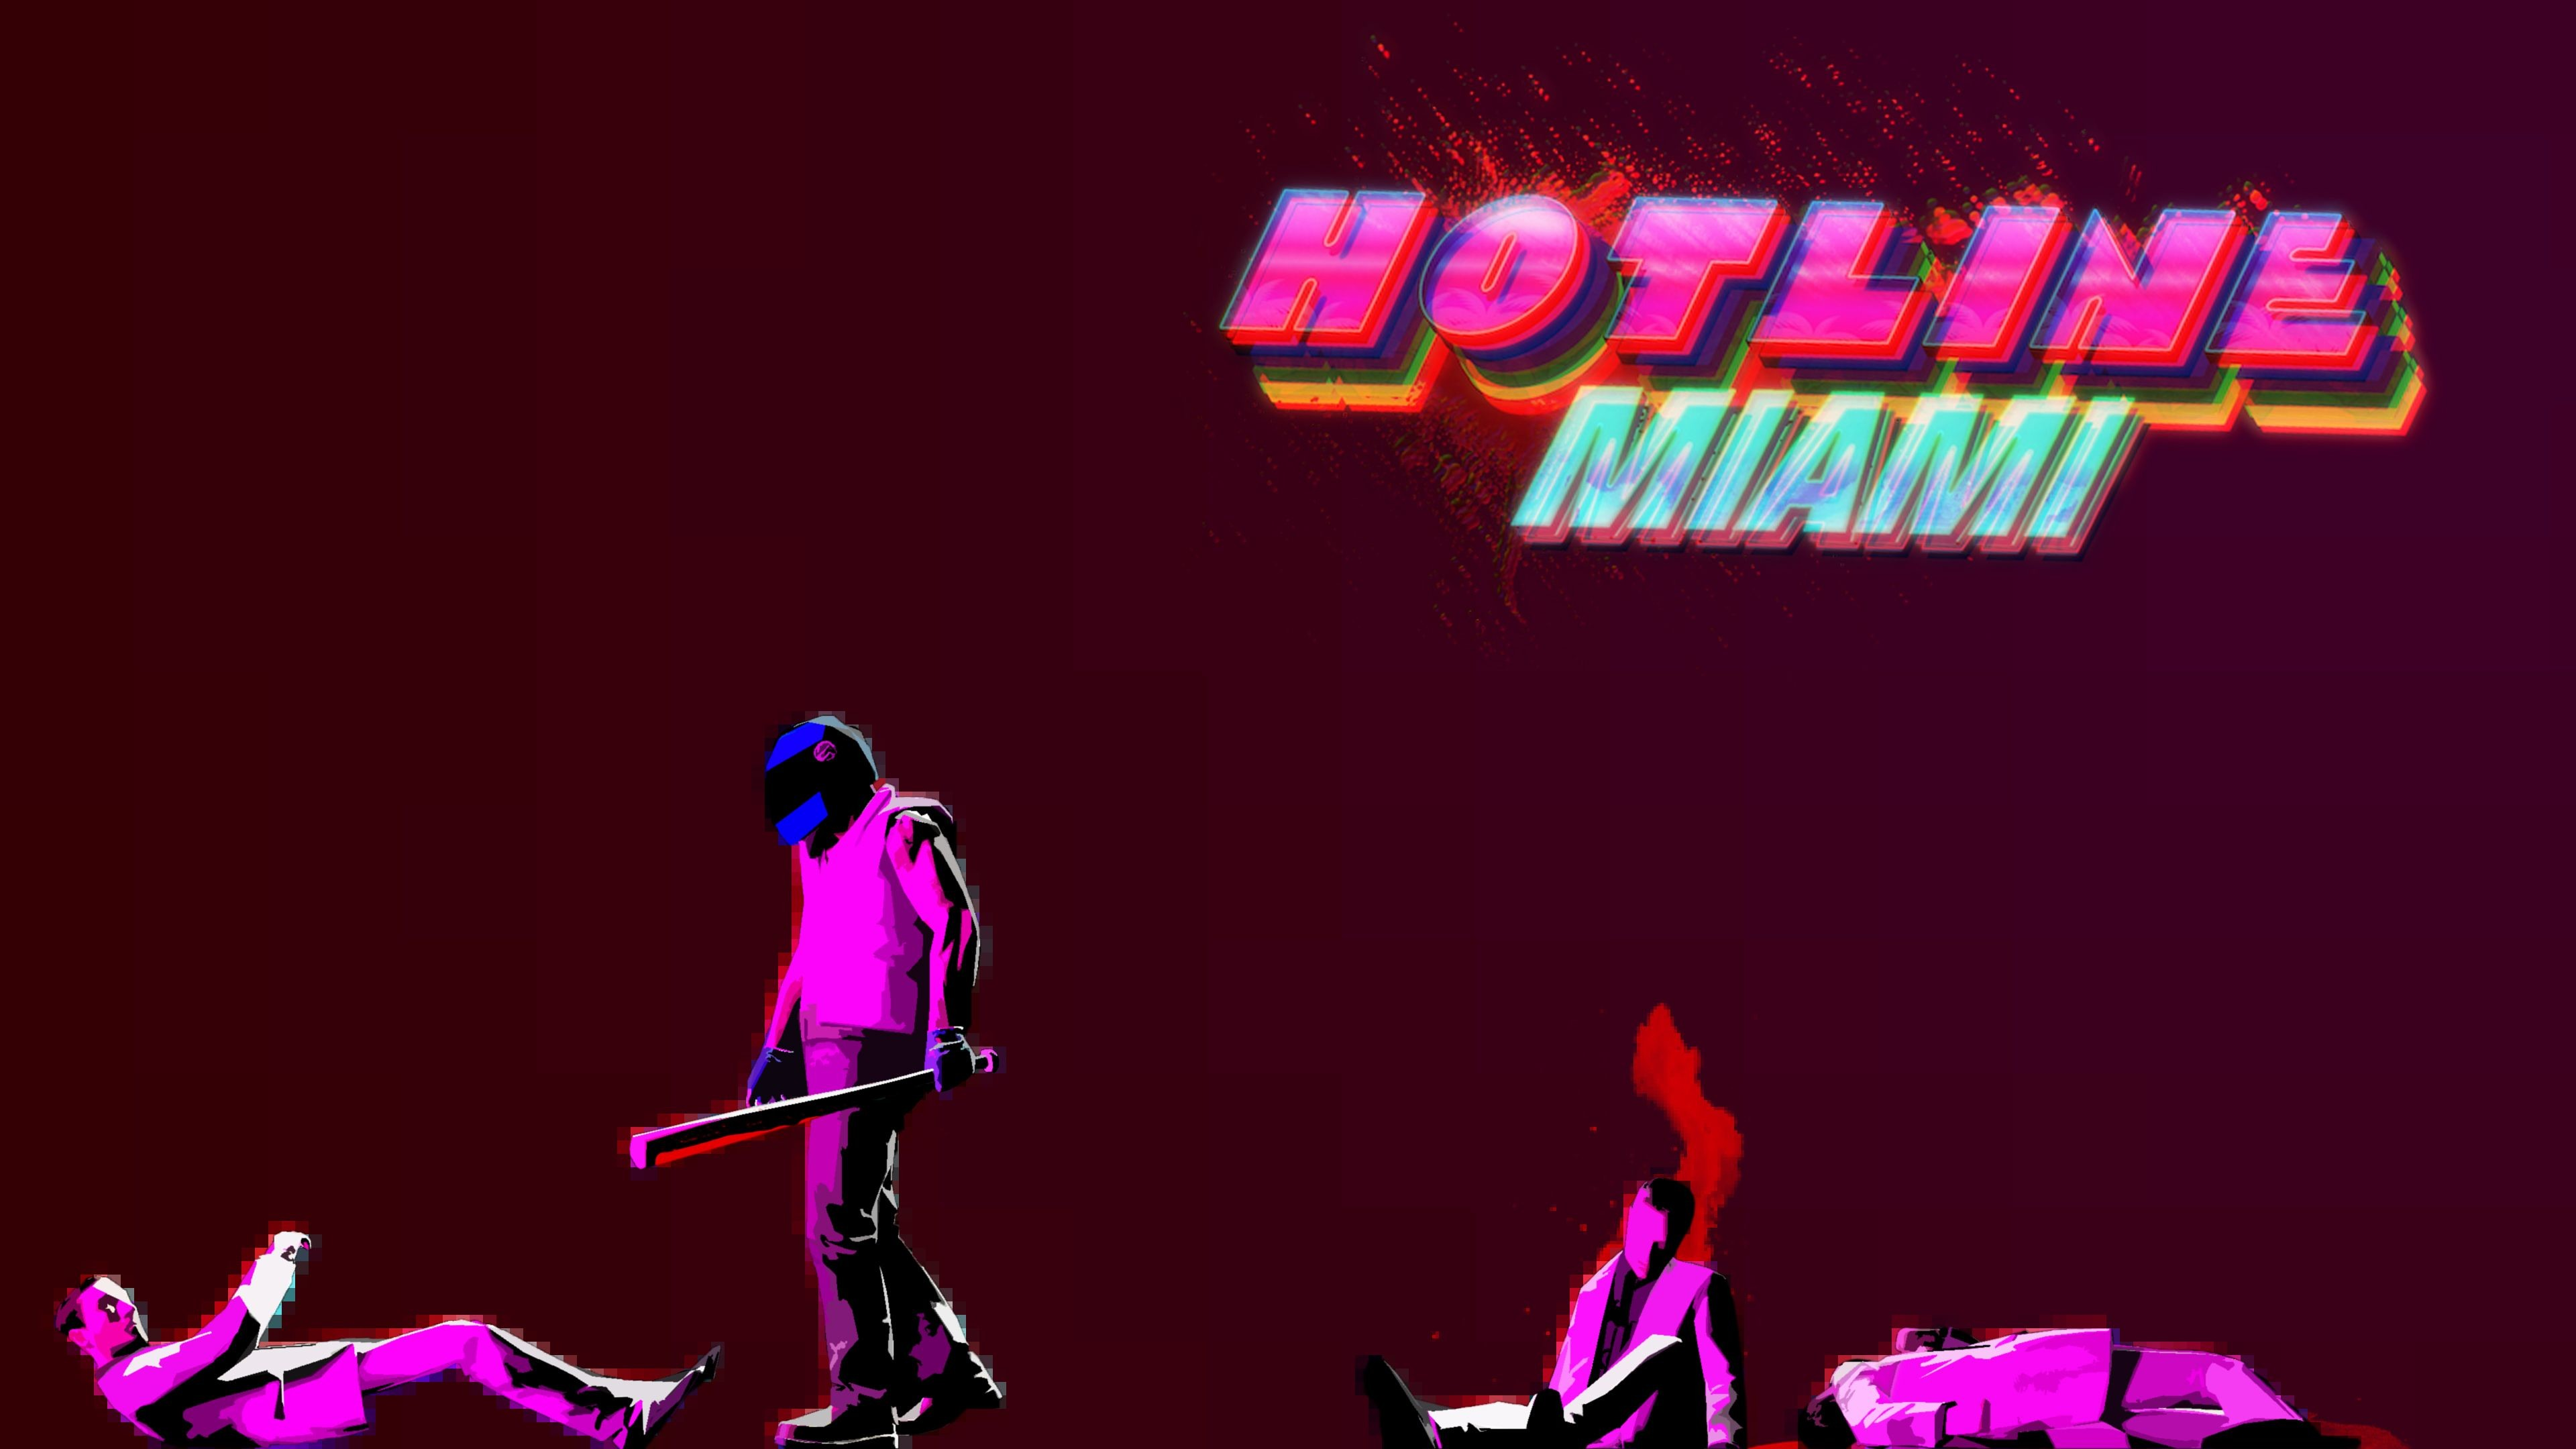 3840x2160 Hotline Miami HD Wallpapers and Backgrounds